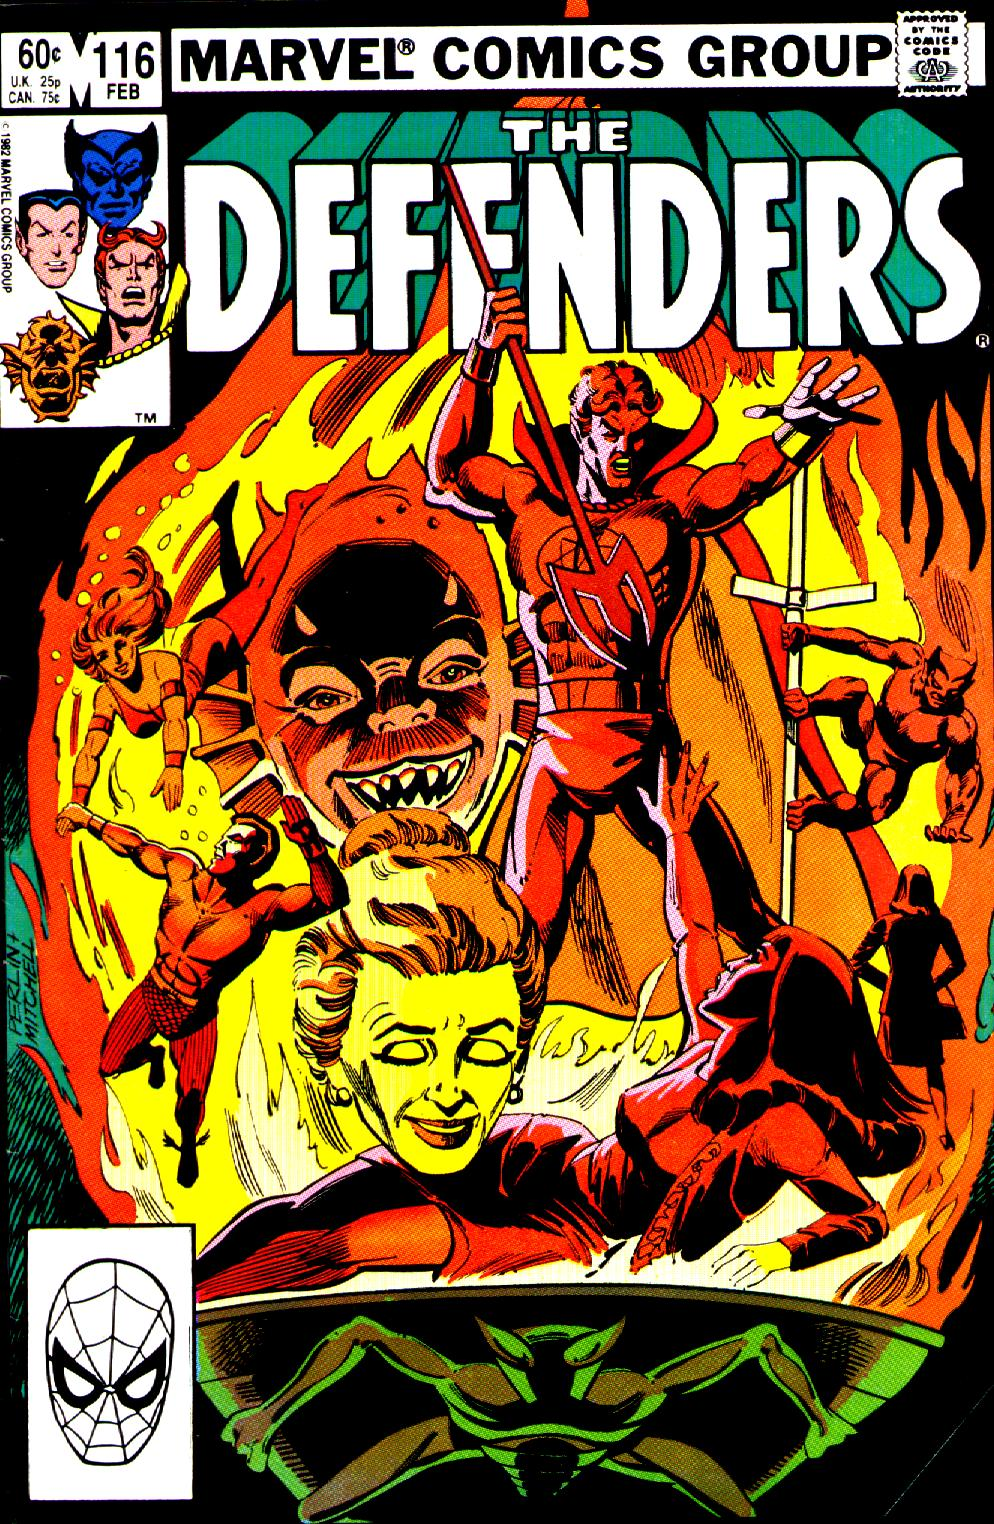 Defenders (1972) #116, cover penciled by Don Perlin & inked by Steve Mitchell.